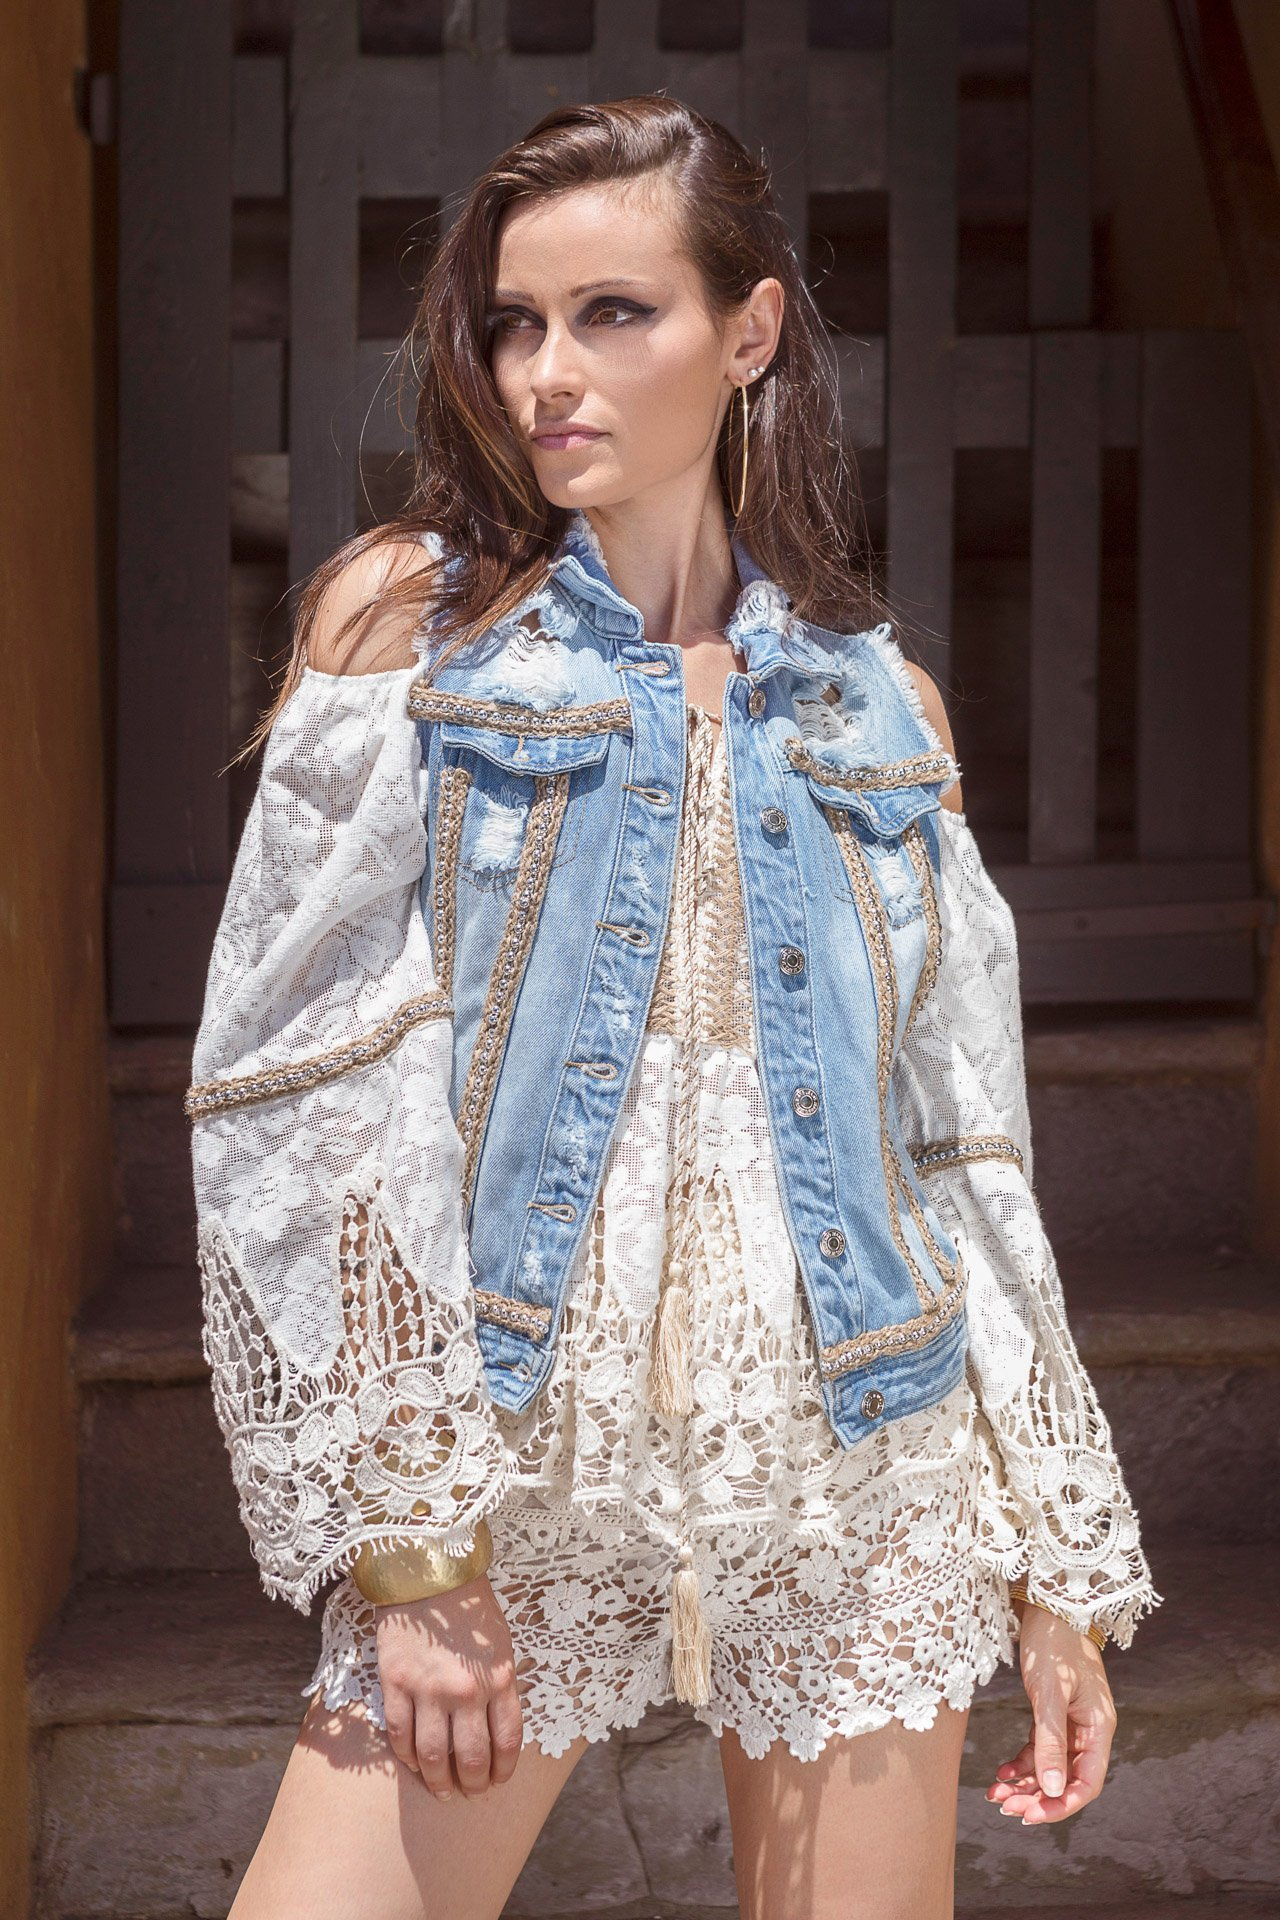 SHOPPING ON LINE PHO FIRENZE GILET IN DENIM E APPLICAZIONI BORCHIE NEW COLLECTION WOMEN'S SPRING SUMMER 2020